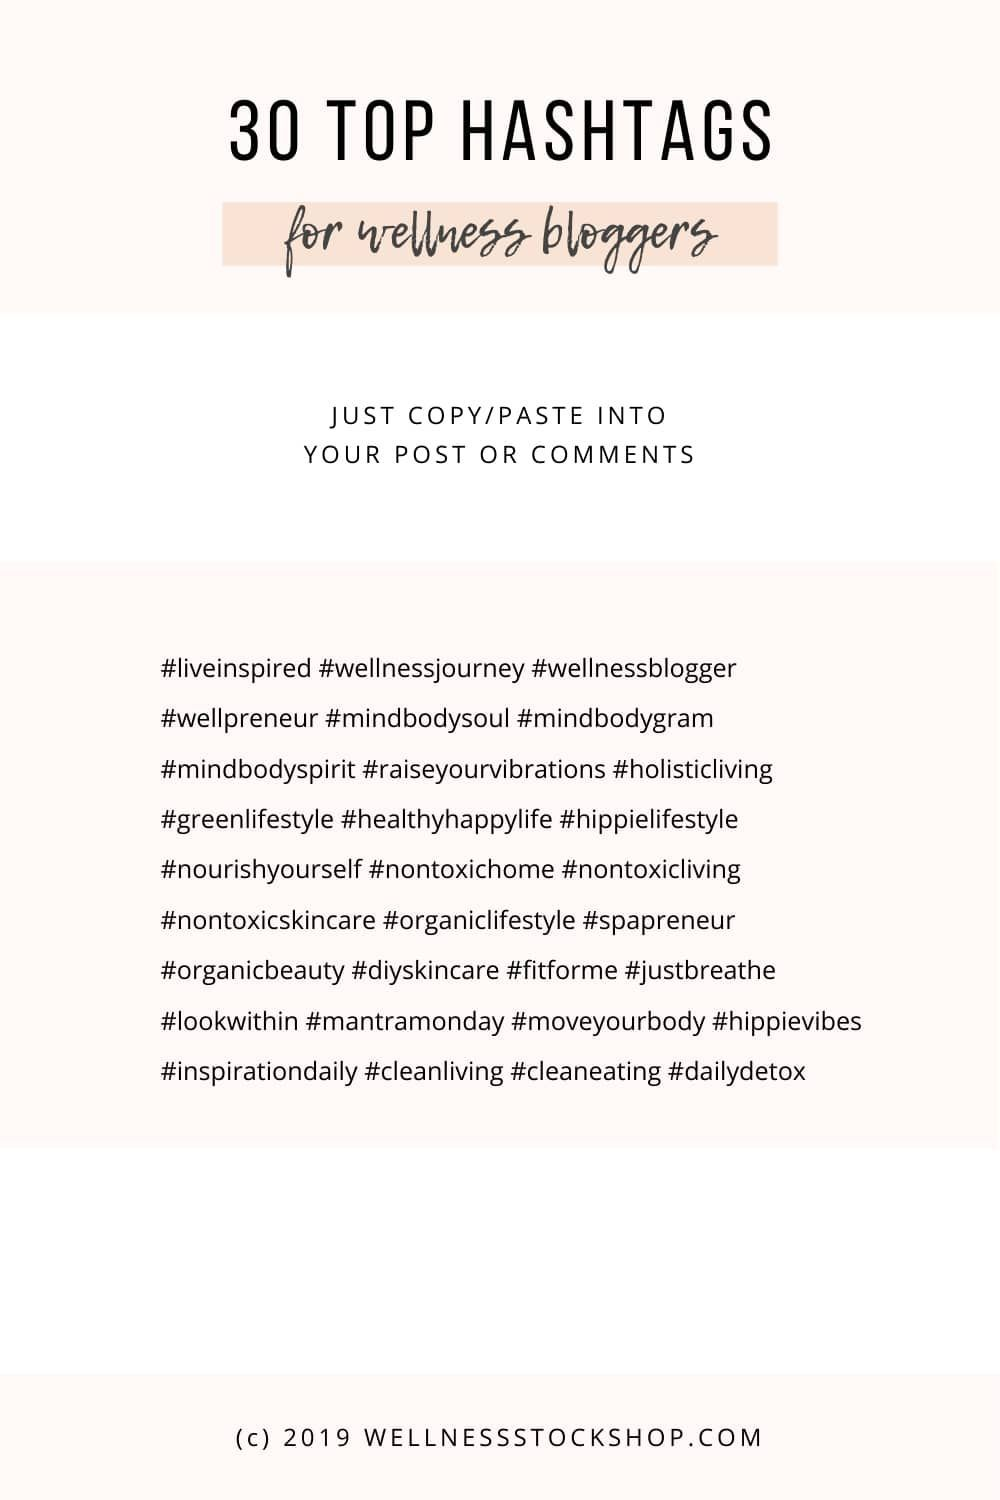 Top 30 Instagram Hashtags For Wellness Bloggers Instagram Hashtags For Likes Hashtags For Likes Social Media Hashtags